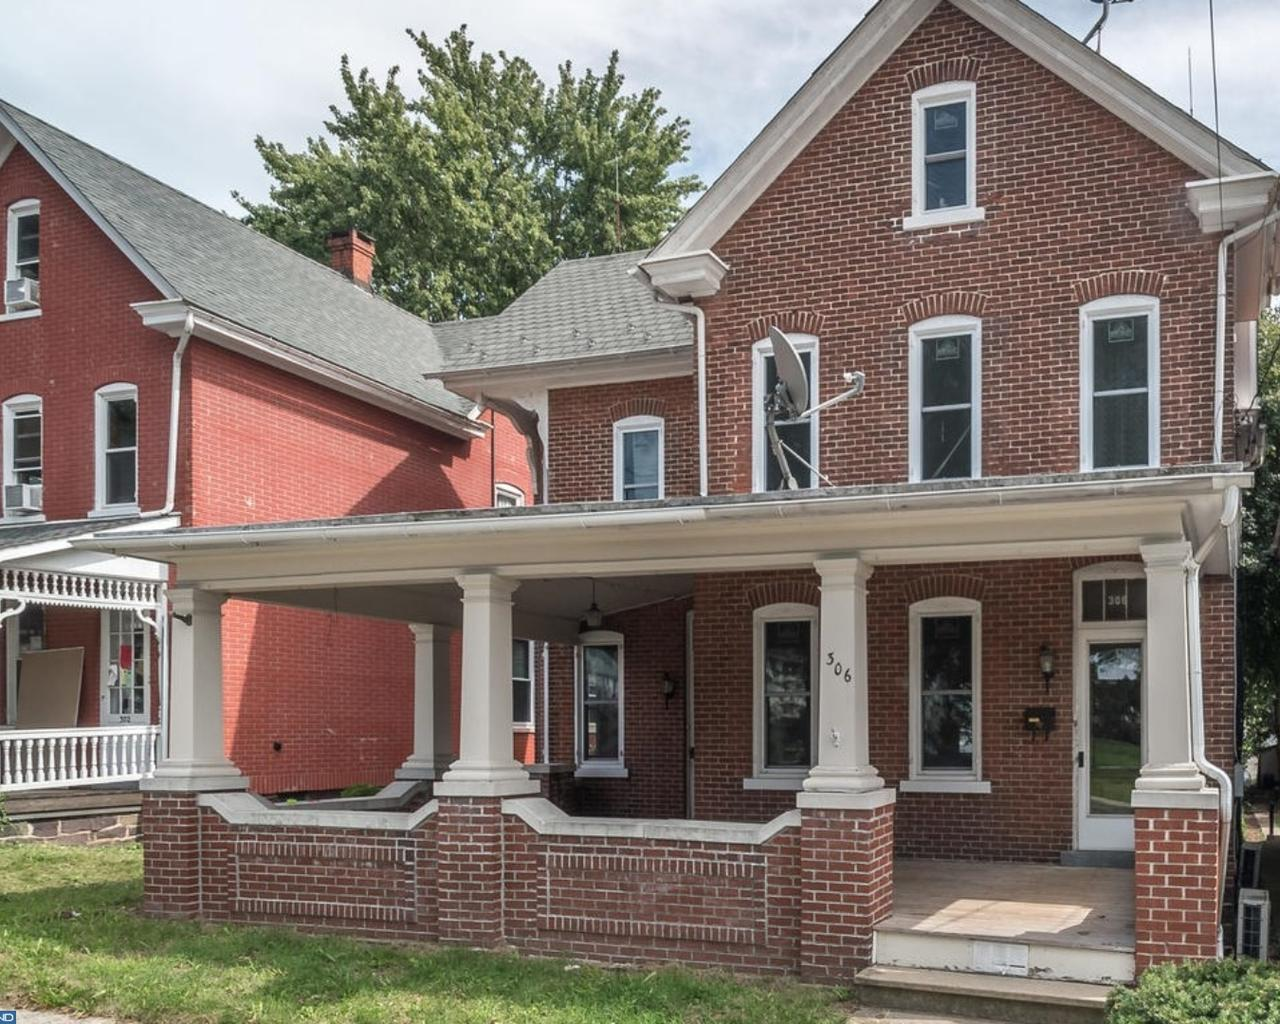 Property for sale at 306 3RD ST, East Greenville,  PA 18041